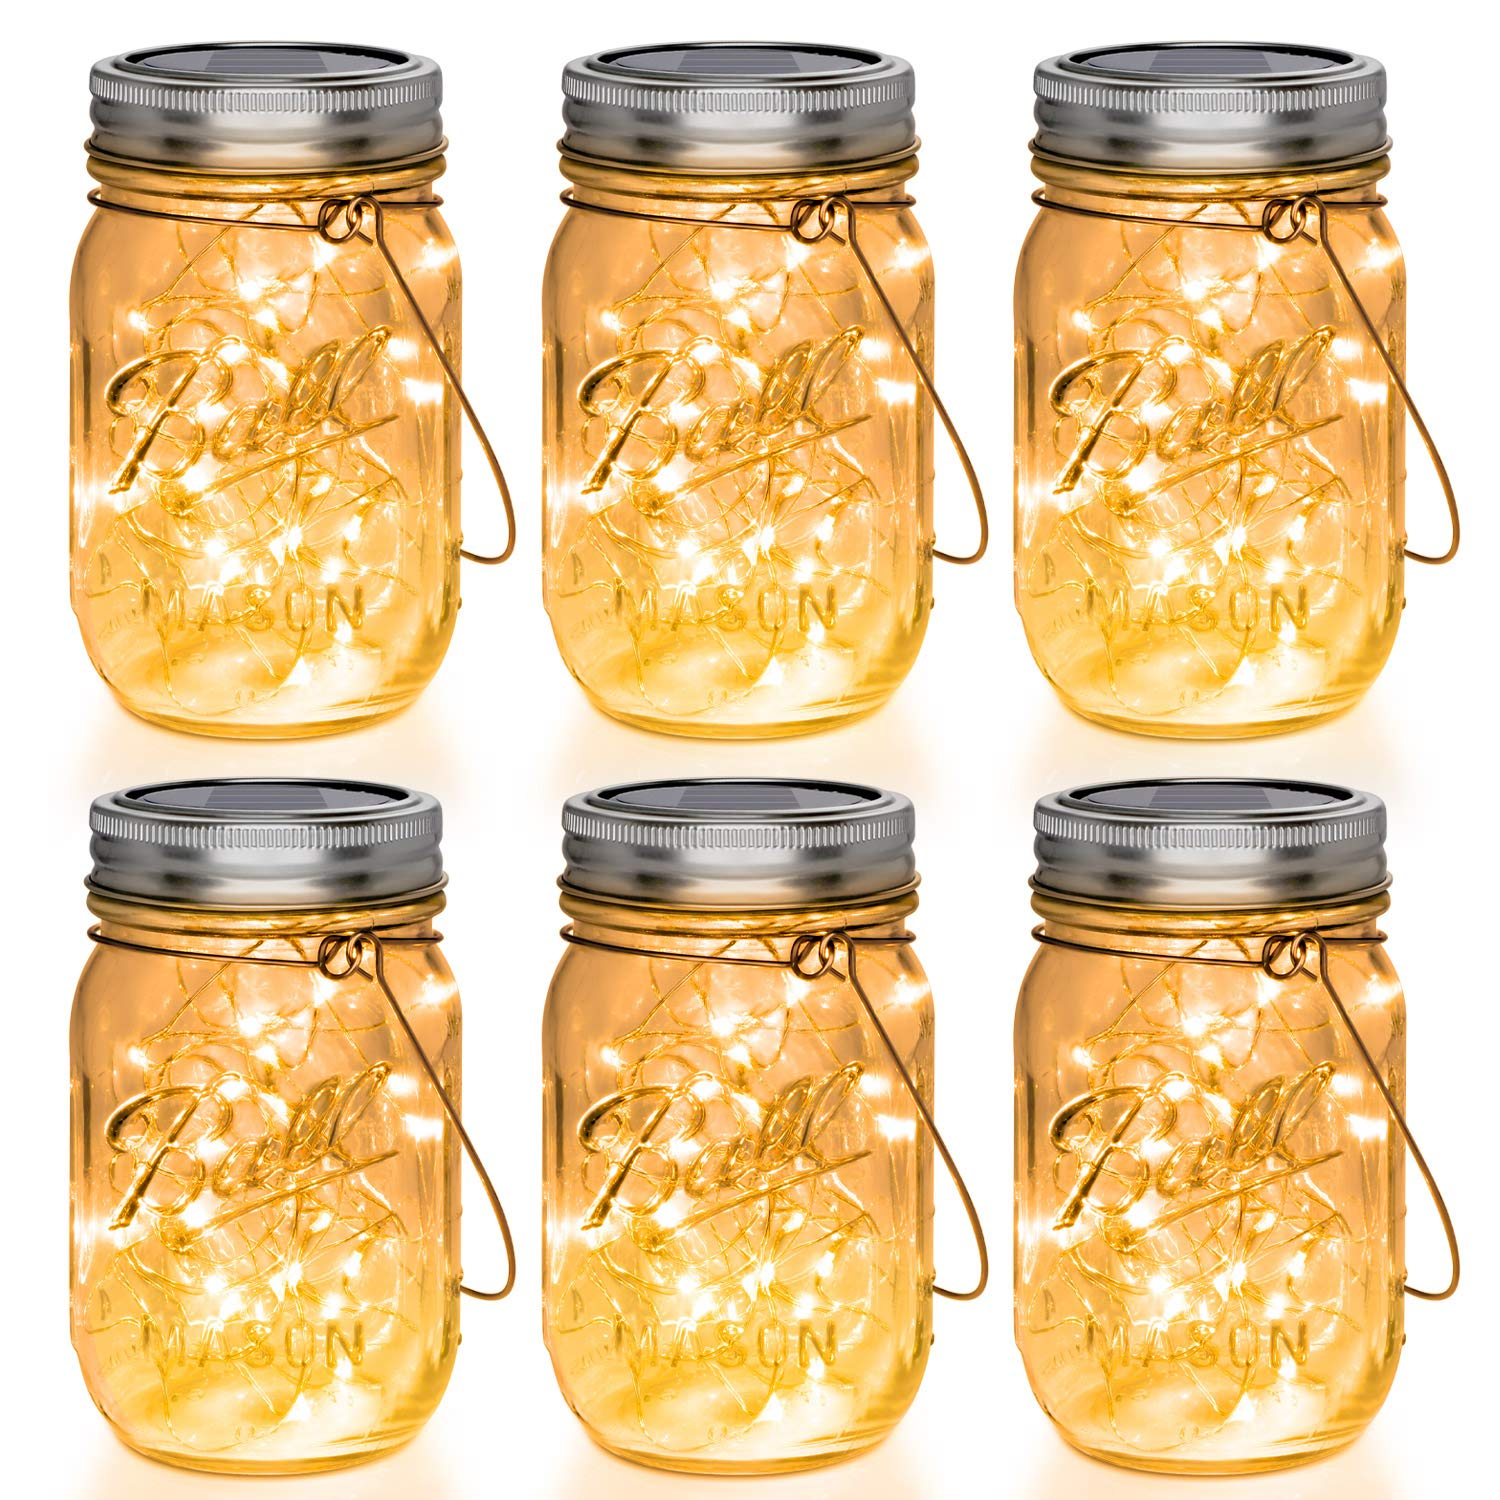 Mason Jar Lights 30 LED, 6 Pack Hanging Solar Lights Outdoors, Waterproof String Fairy Lights Solar Lanterns for Patio Garden, Yard and Lawn Decor(Jars Included) by Mlambert